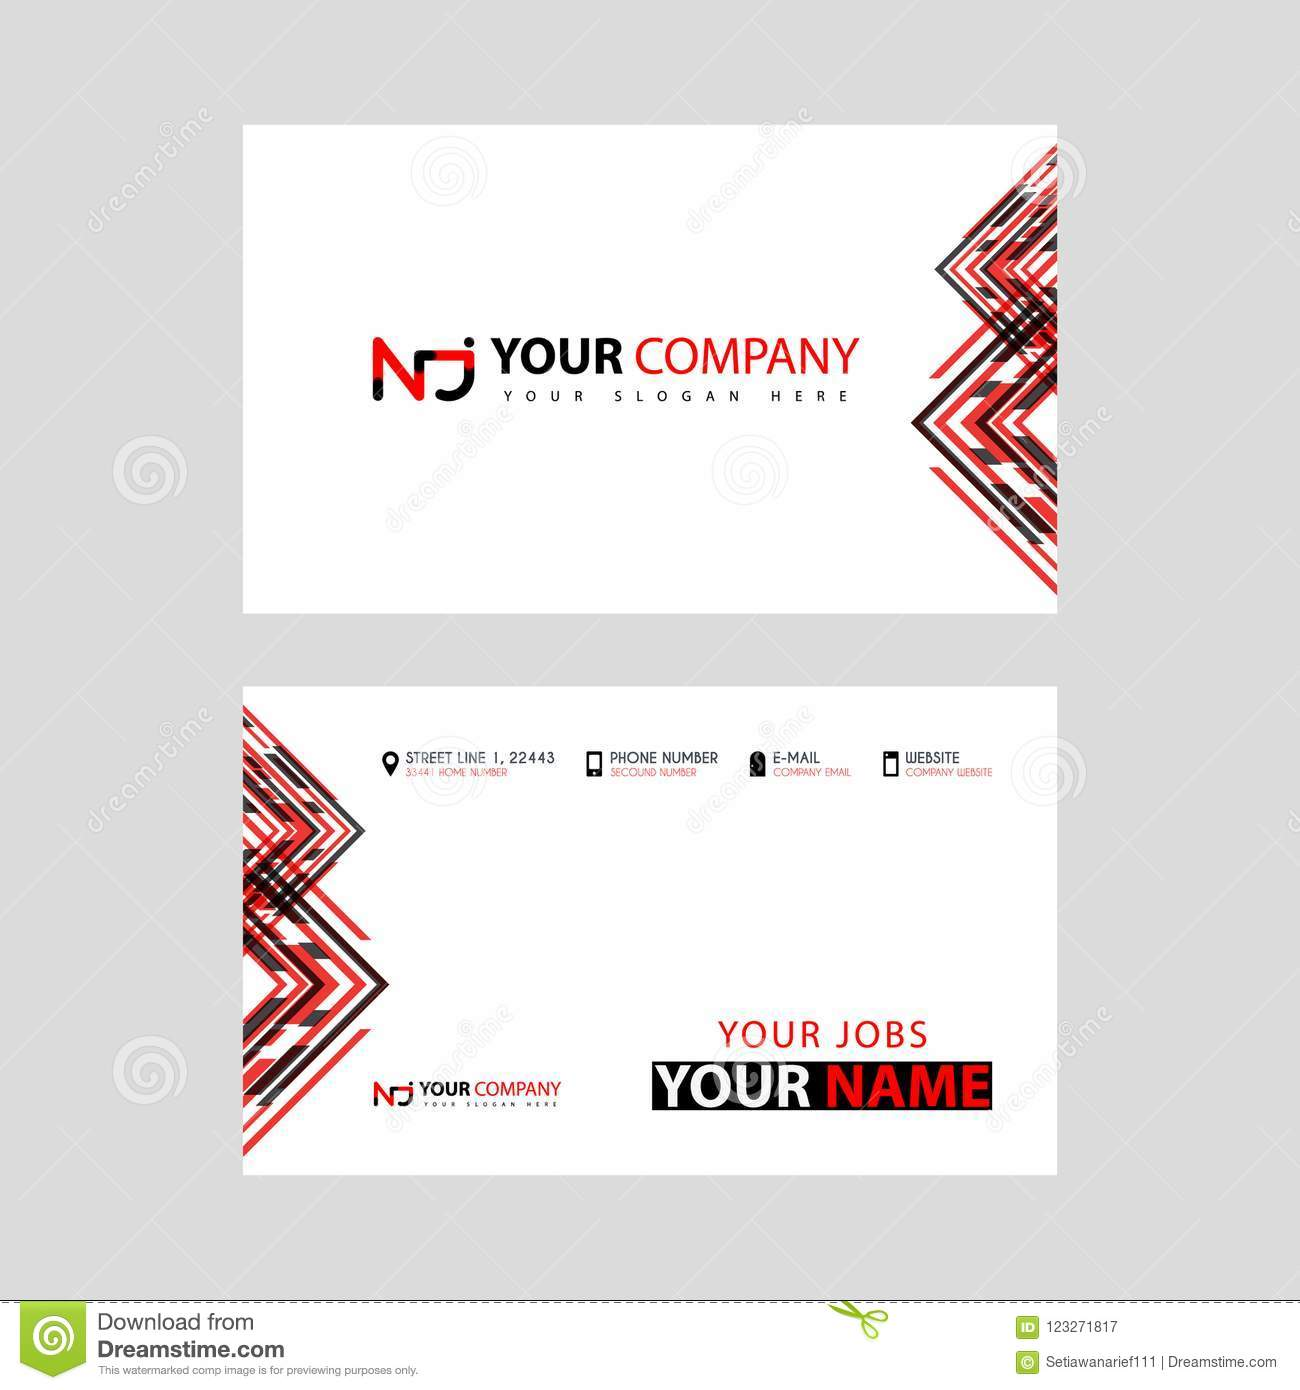 Nj stock illustrations 28 nj stock illustrations vectors nj stock illustrations 28 nj stock illustrations vectors clipart dreamstime reheart Choice Image